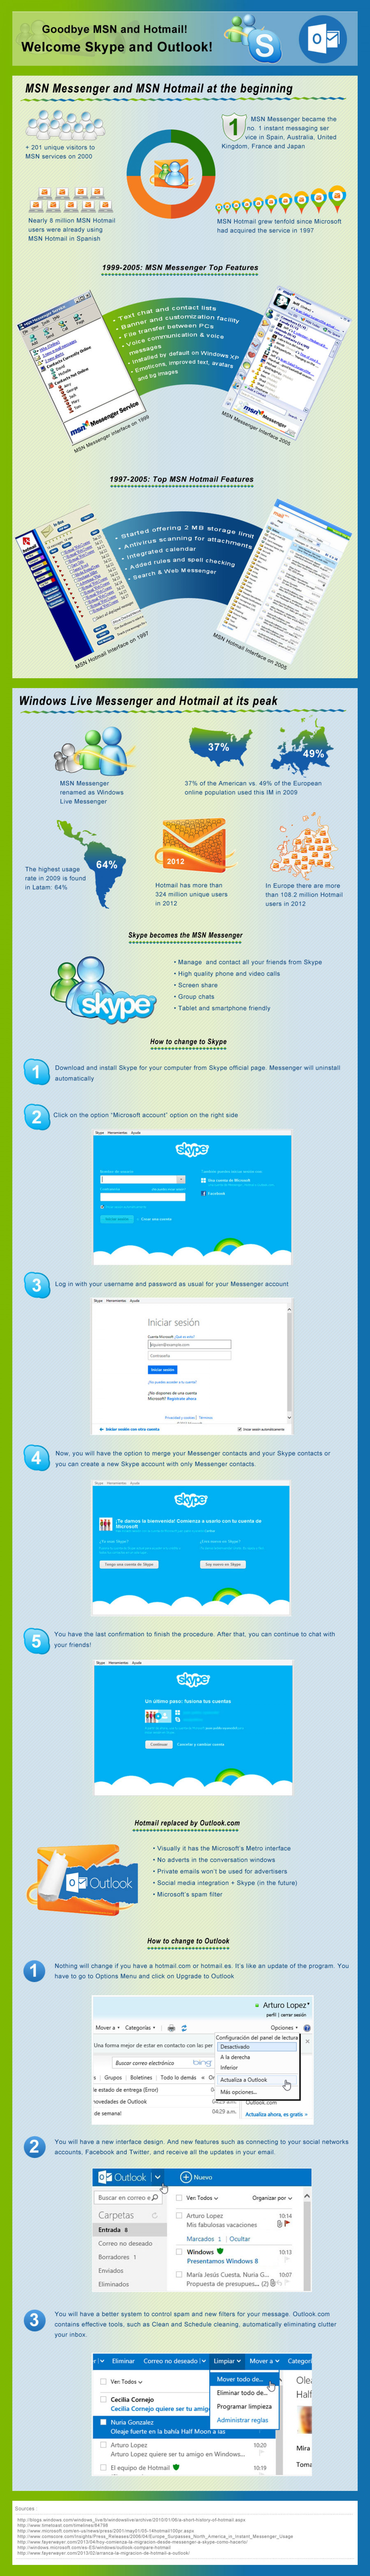 Goodbye MSN and Hotmail! Welcome Skype and Outlook! Infographic